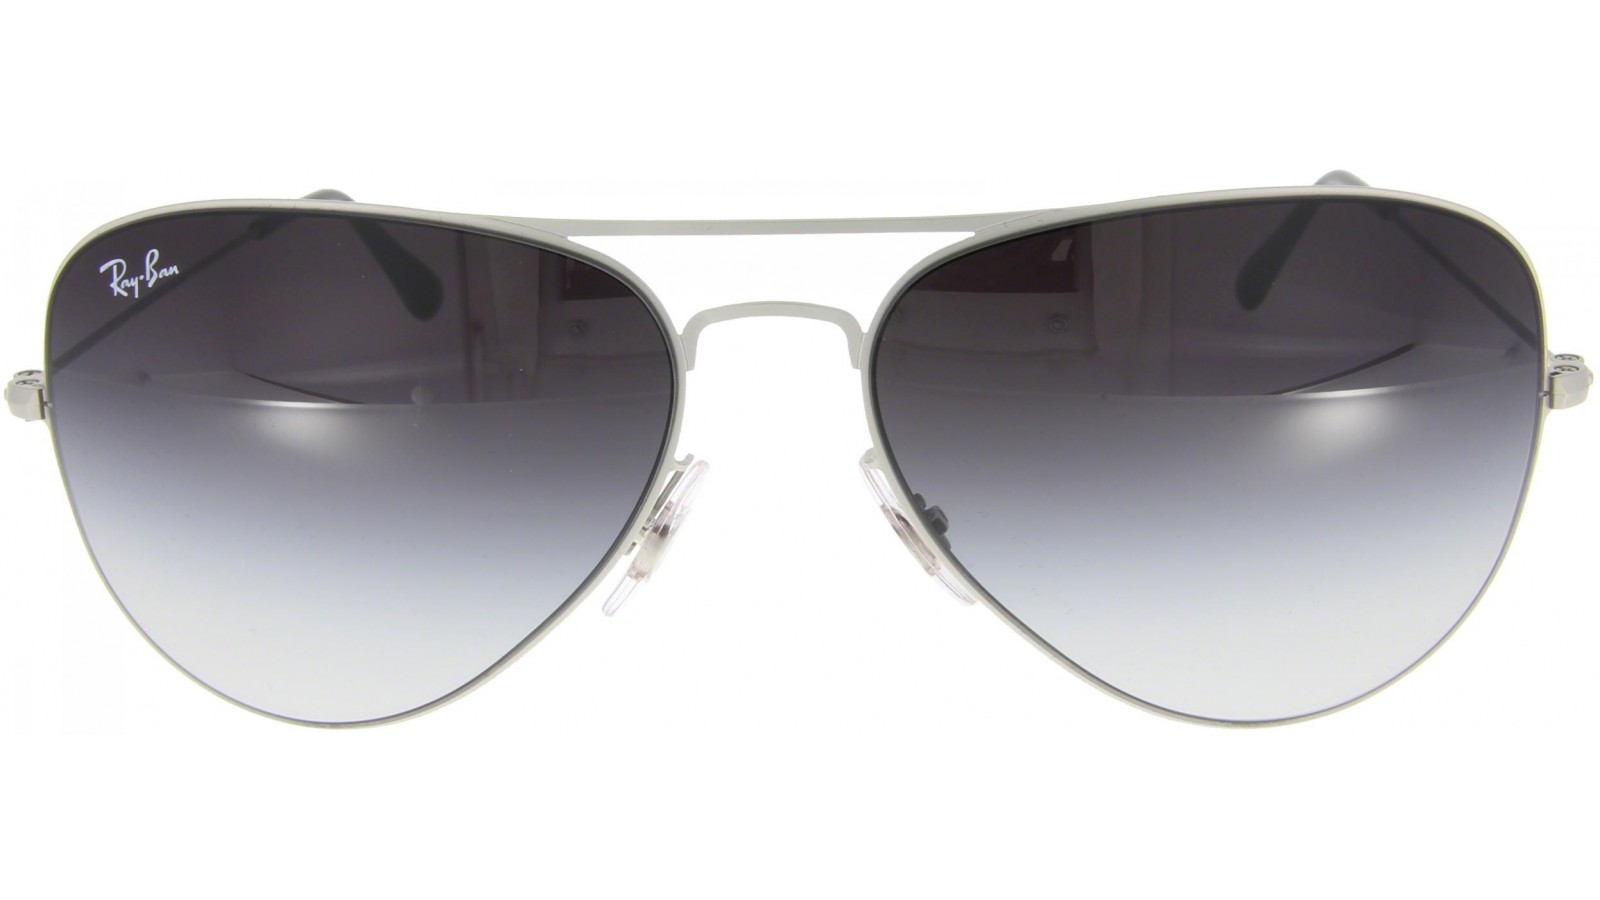 0d03a6ed39 Ray-Ban Sonnenbrille RB 3513 Aviator 154 8G 3N 58 140